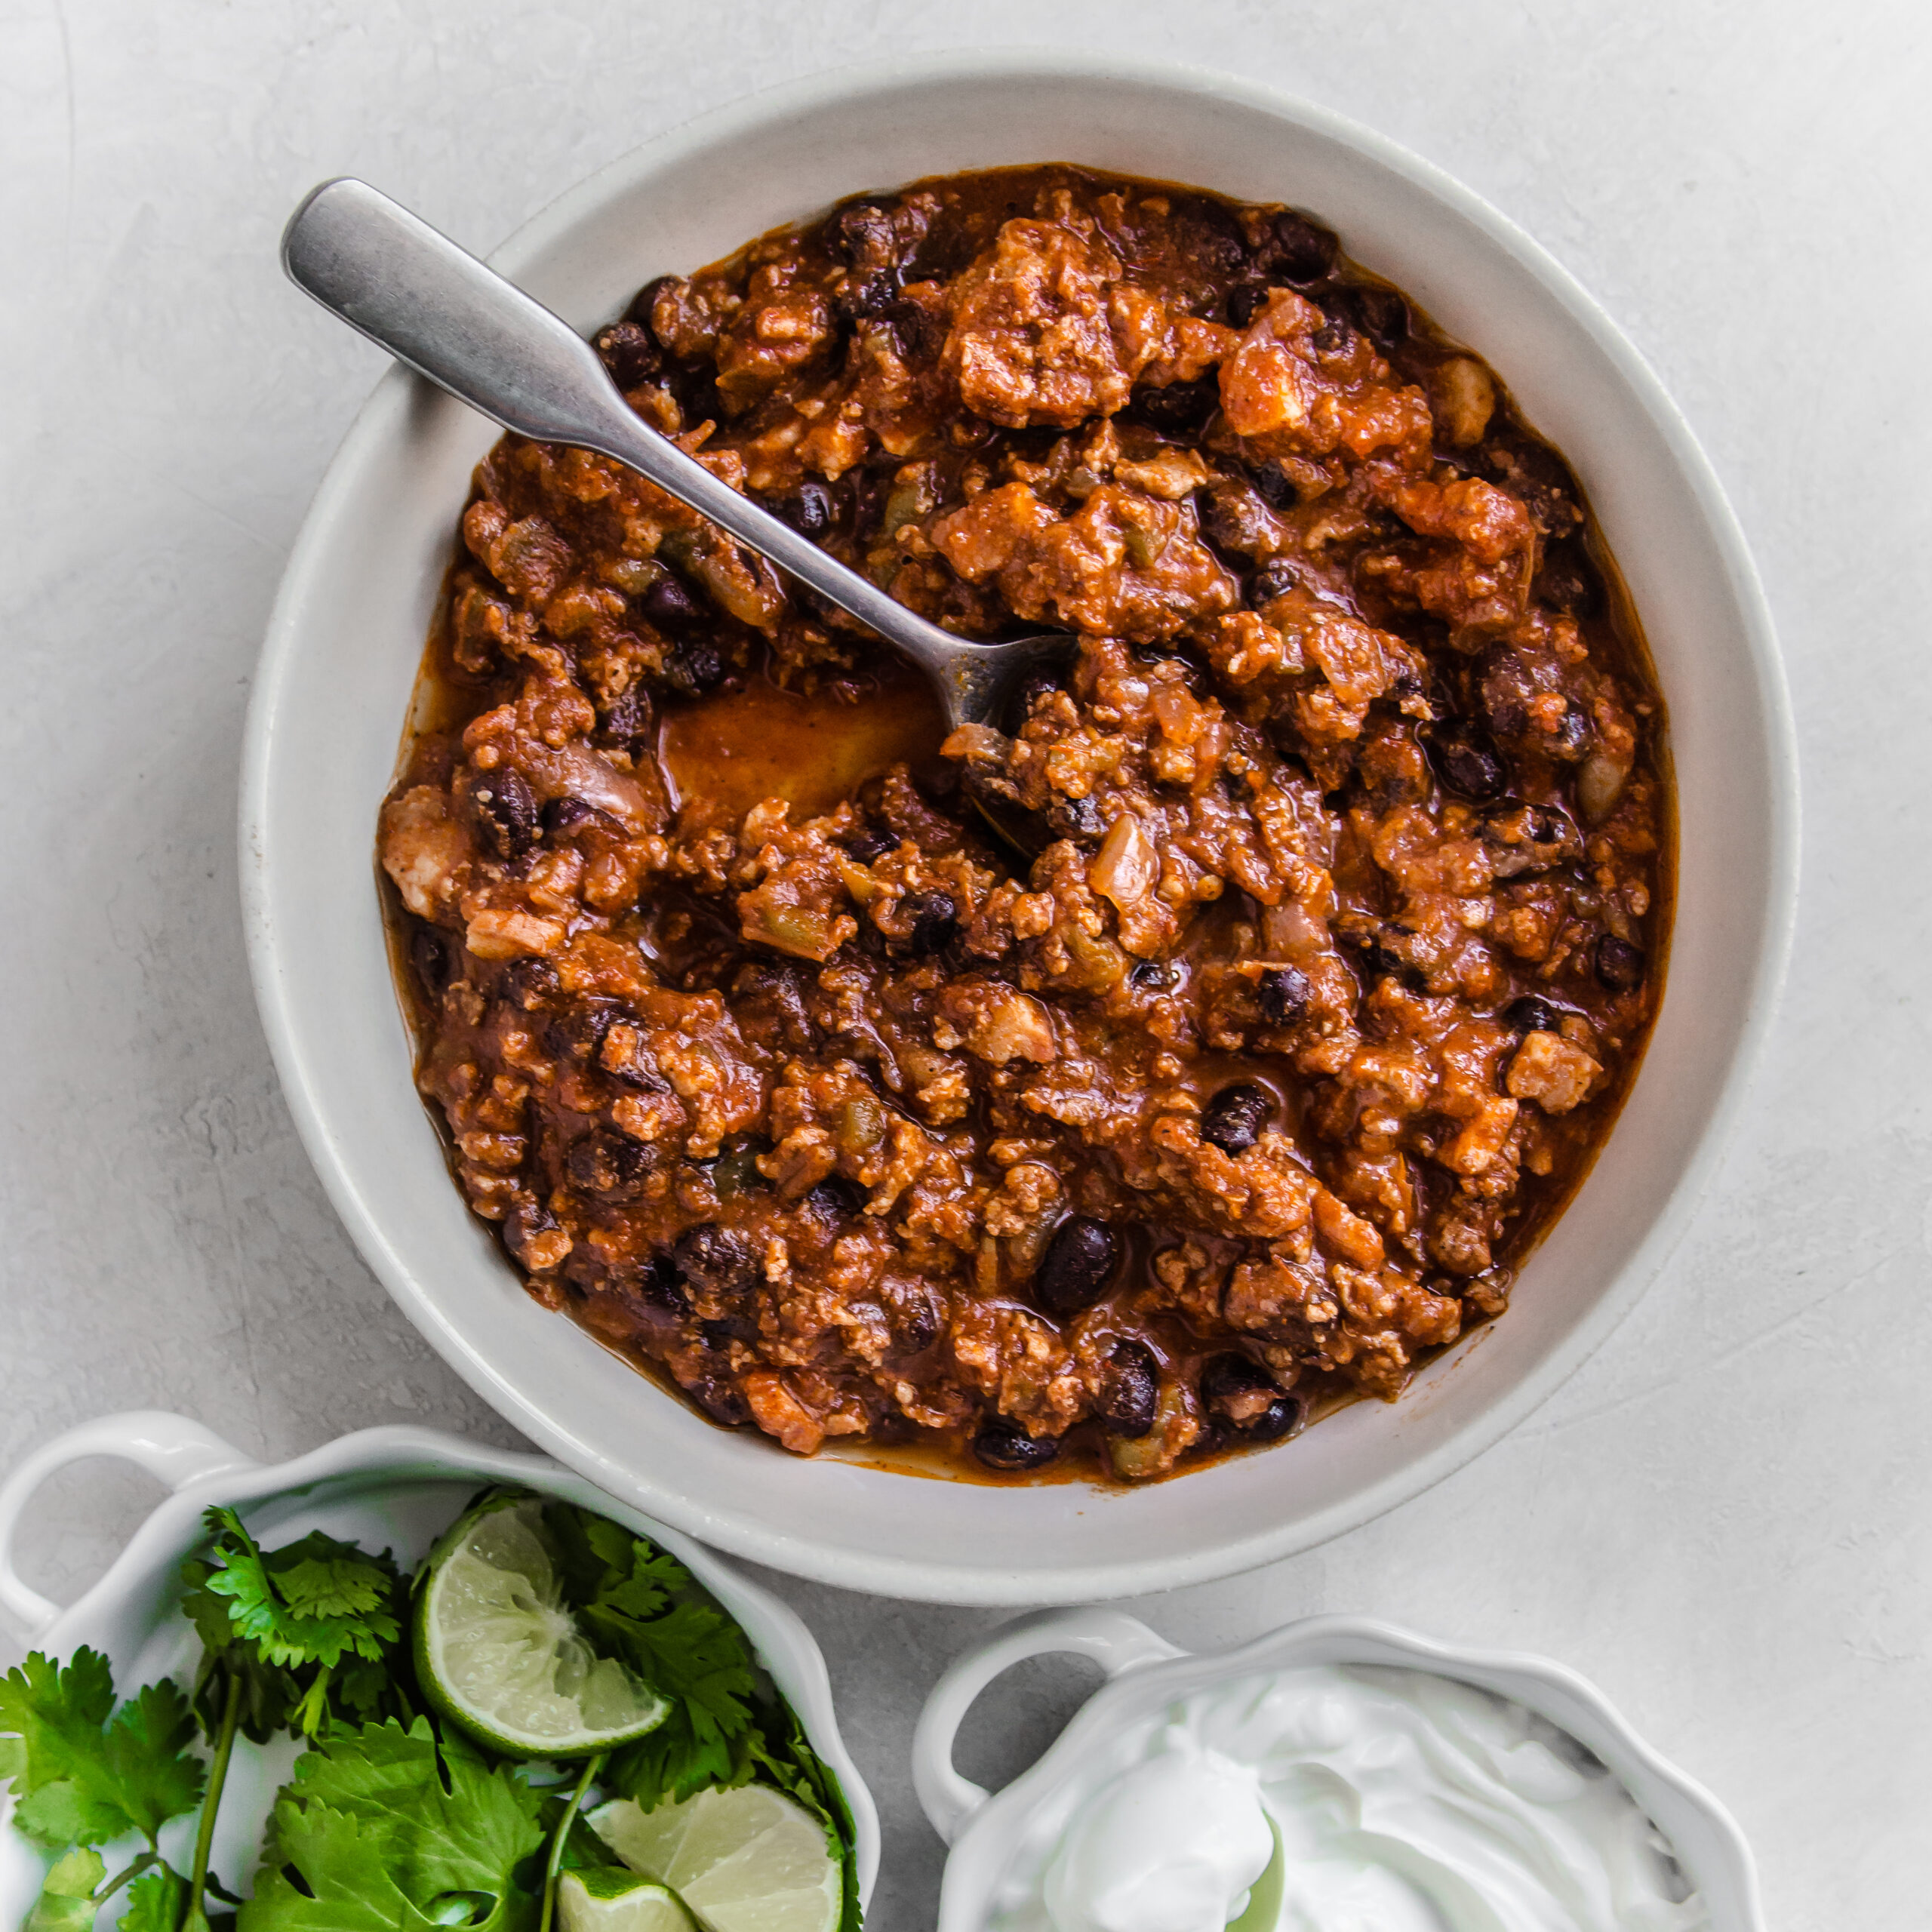 Ground Pork and Black Bean Chili 1×1 (1 of 1)